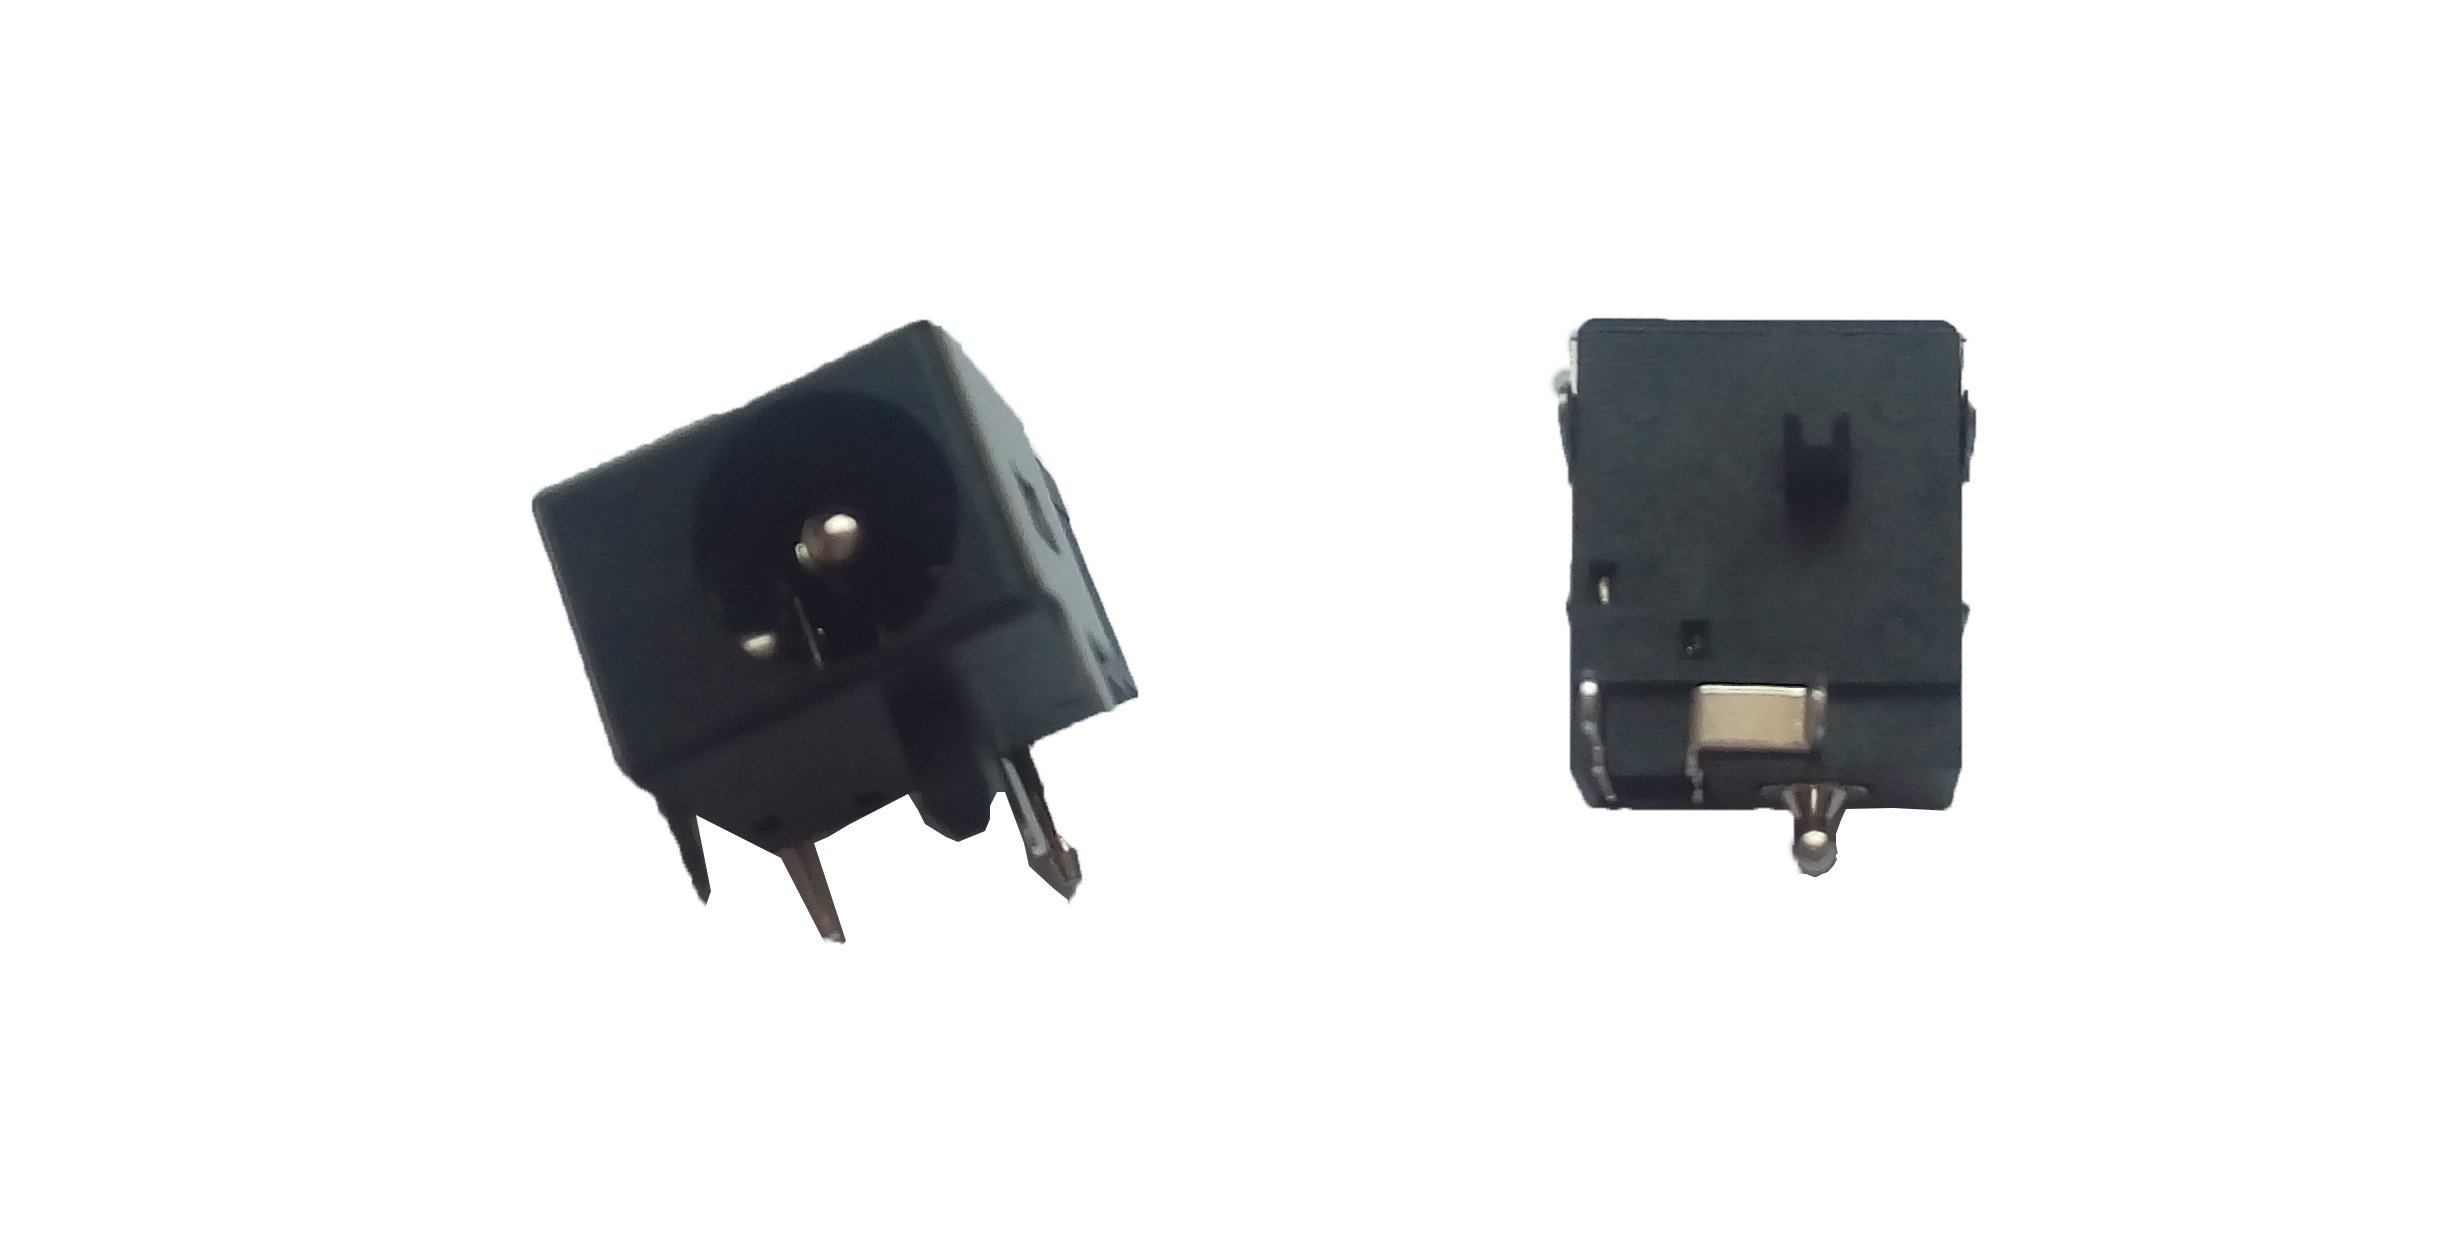 DC In Power Jack For Acer AS5516 AS5517 AS5532 AS5535 6735 7735Z Acer Travelmate: 5610Acer Extensa:7200 7620 7620G 7620z EX7620-4021 EX7620-4498 EX7620-4641